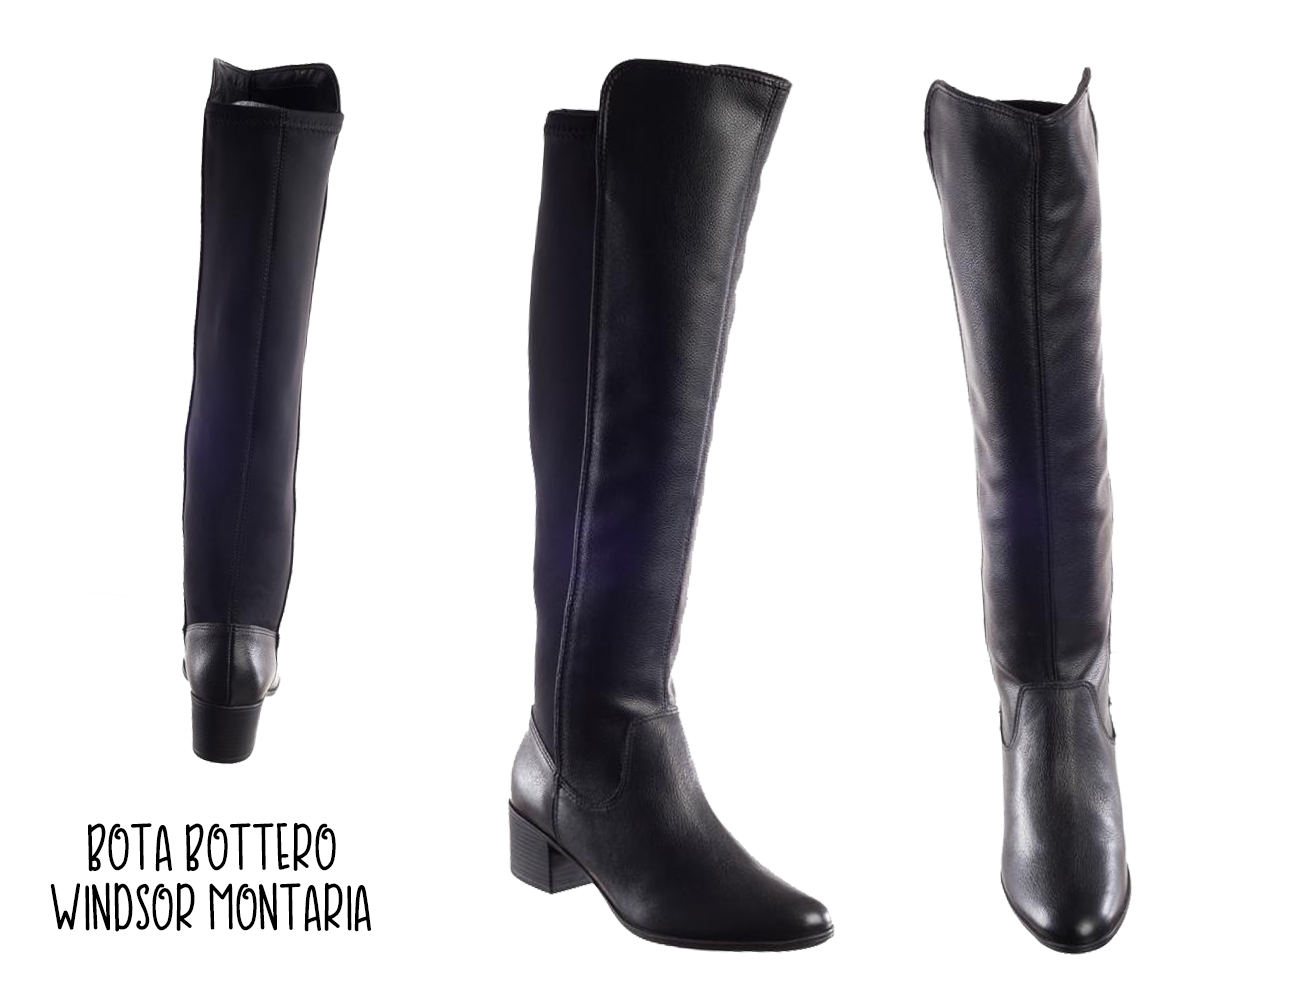 Bota Bottero Windsor Montaria blog